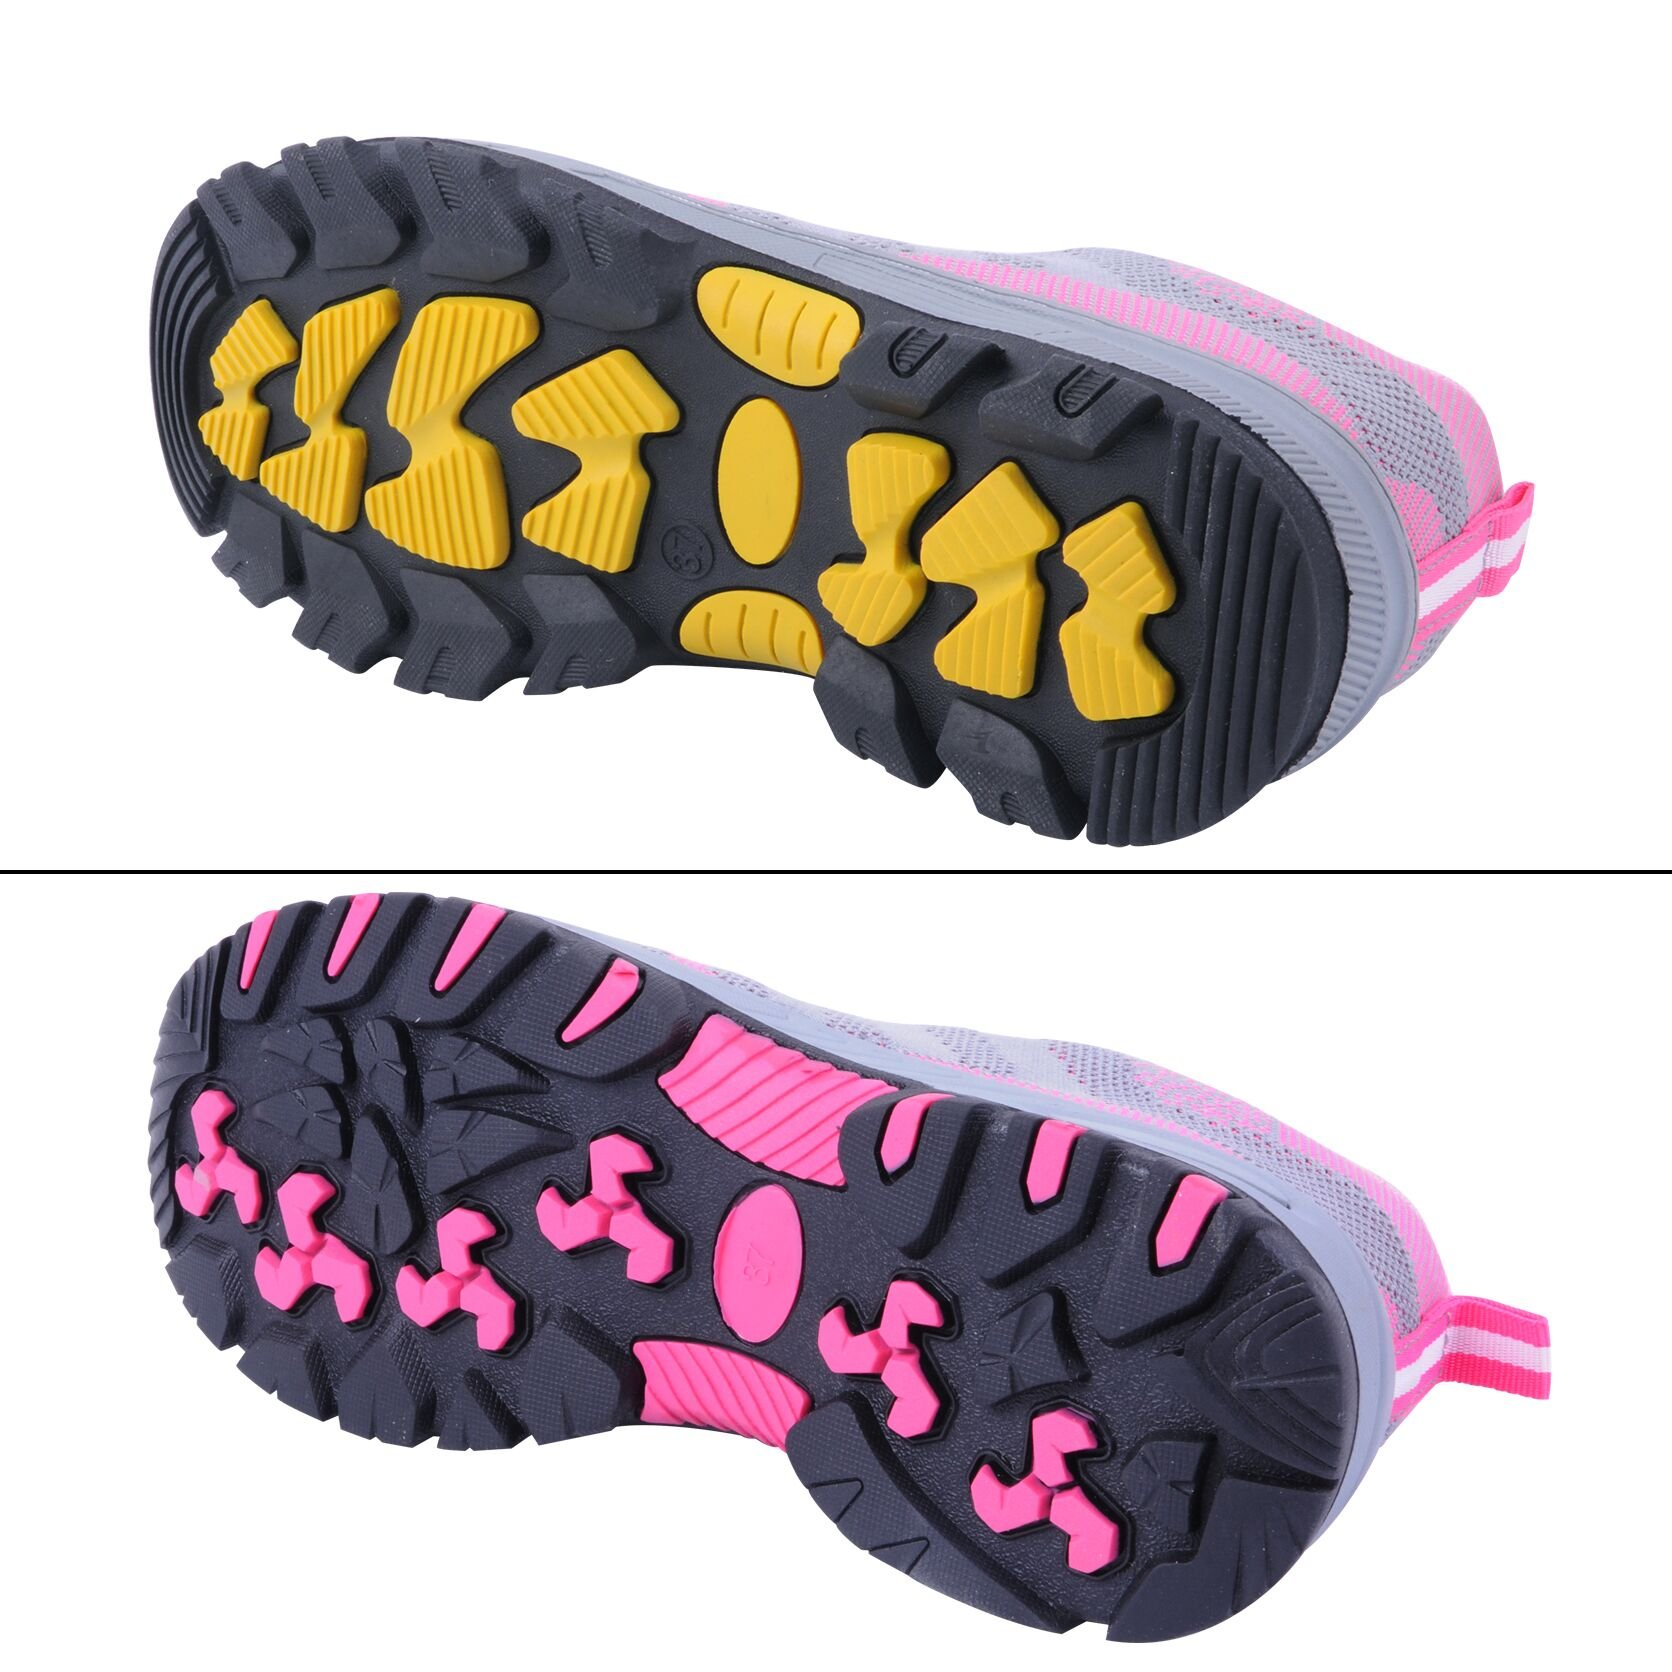 Optimal Women's Safety Shoes Work Shoes Protect Toe Shoes … by Optimal Product (Image #5)